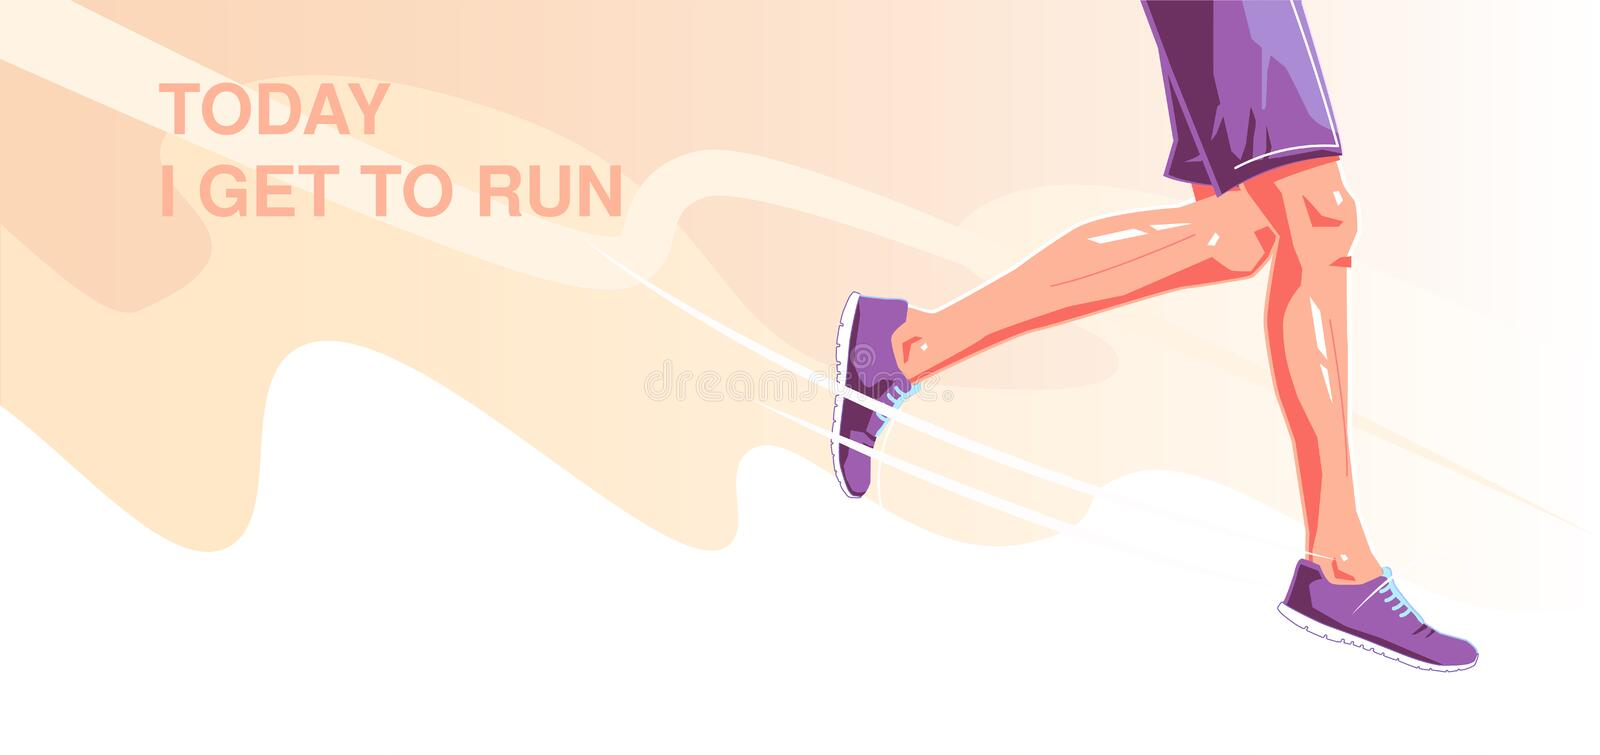 Today i get to run. Natural running. Healthy running lifestyle concept. Runner legs on background. Vector flat graphic. Today i get to run. Natural running stock illustration